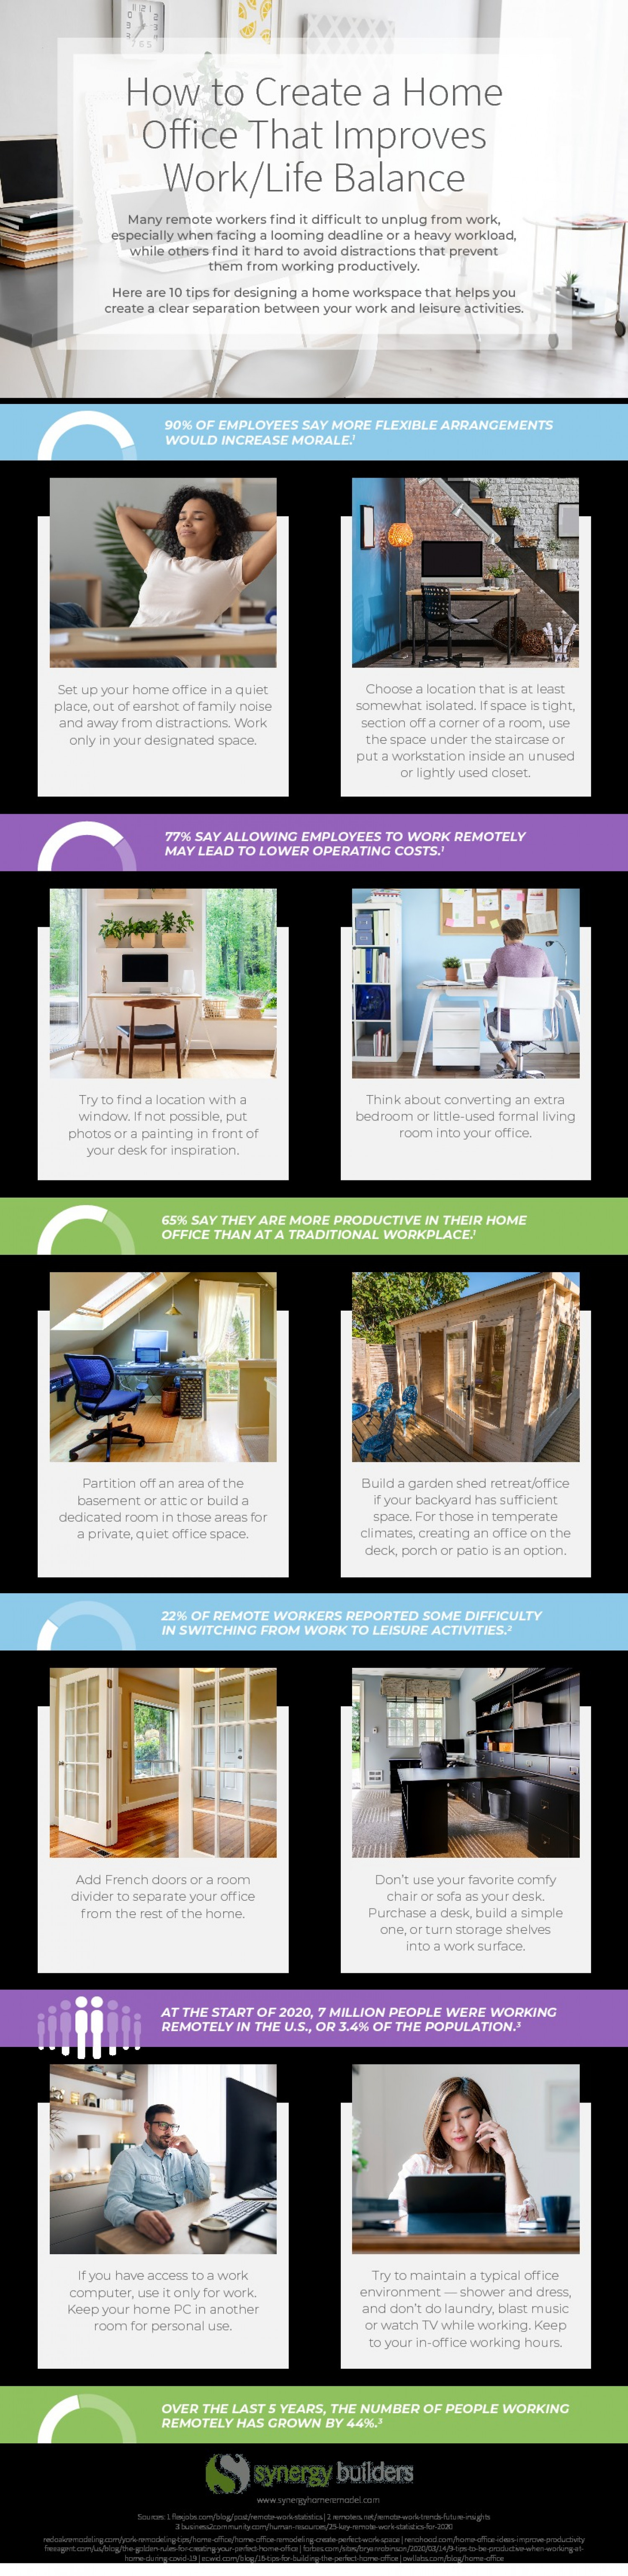 How to Create a Home Office That Improves Work/Life Balance Infographic